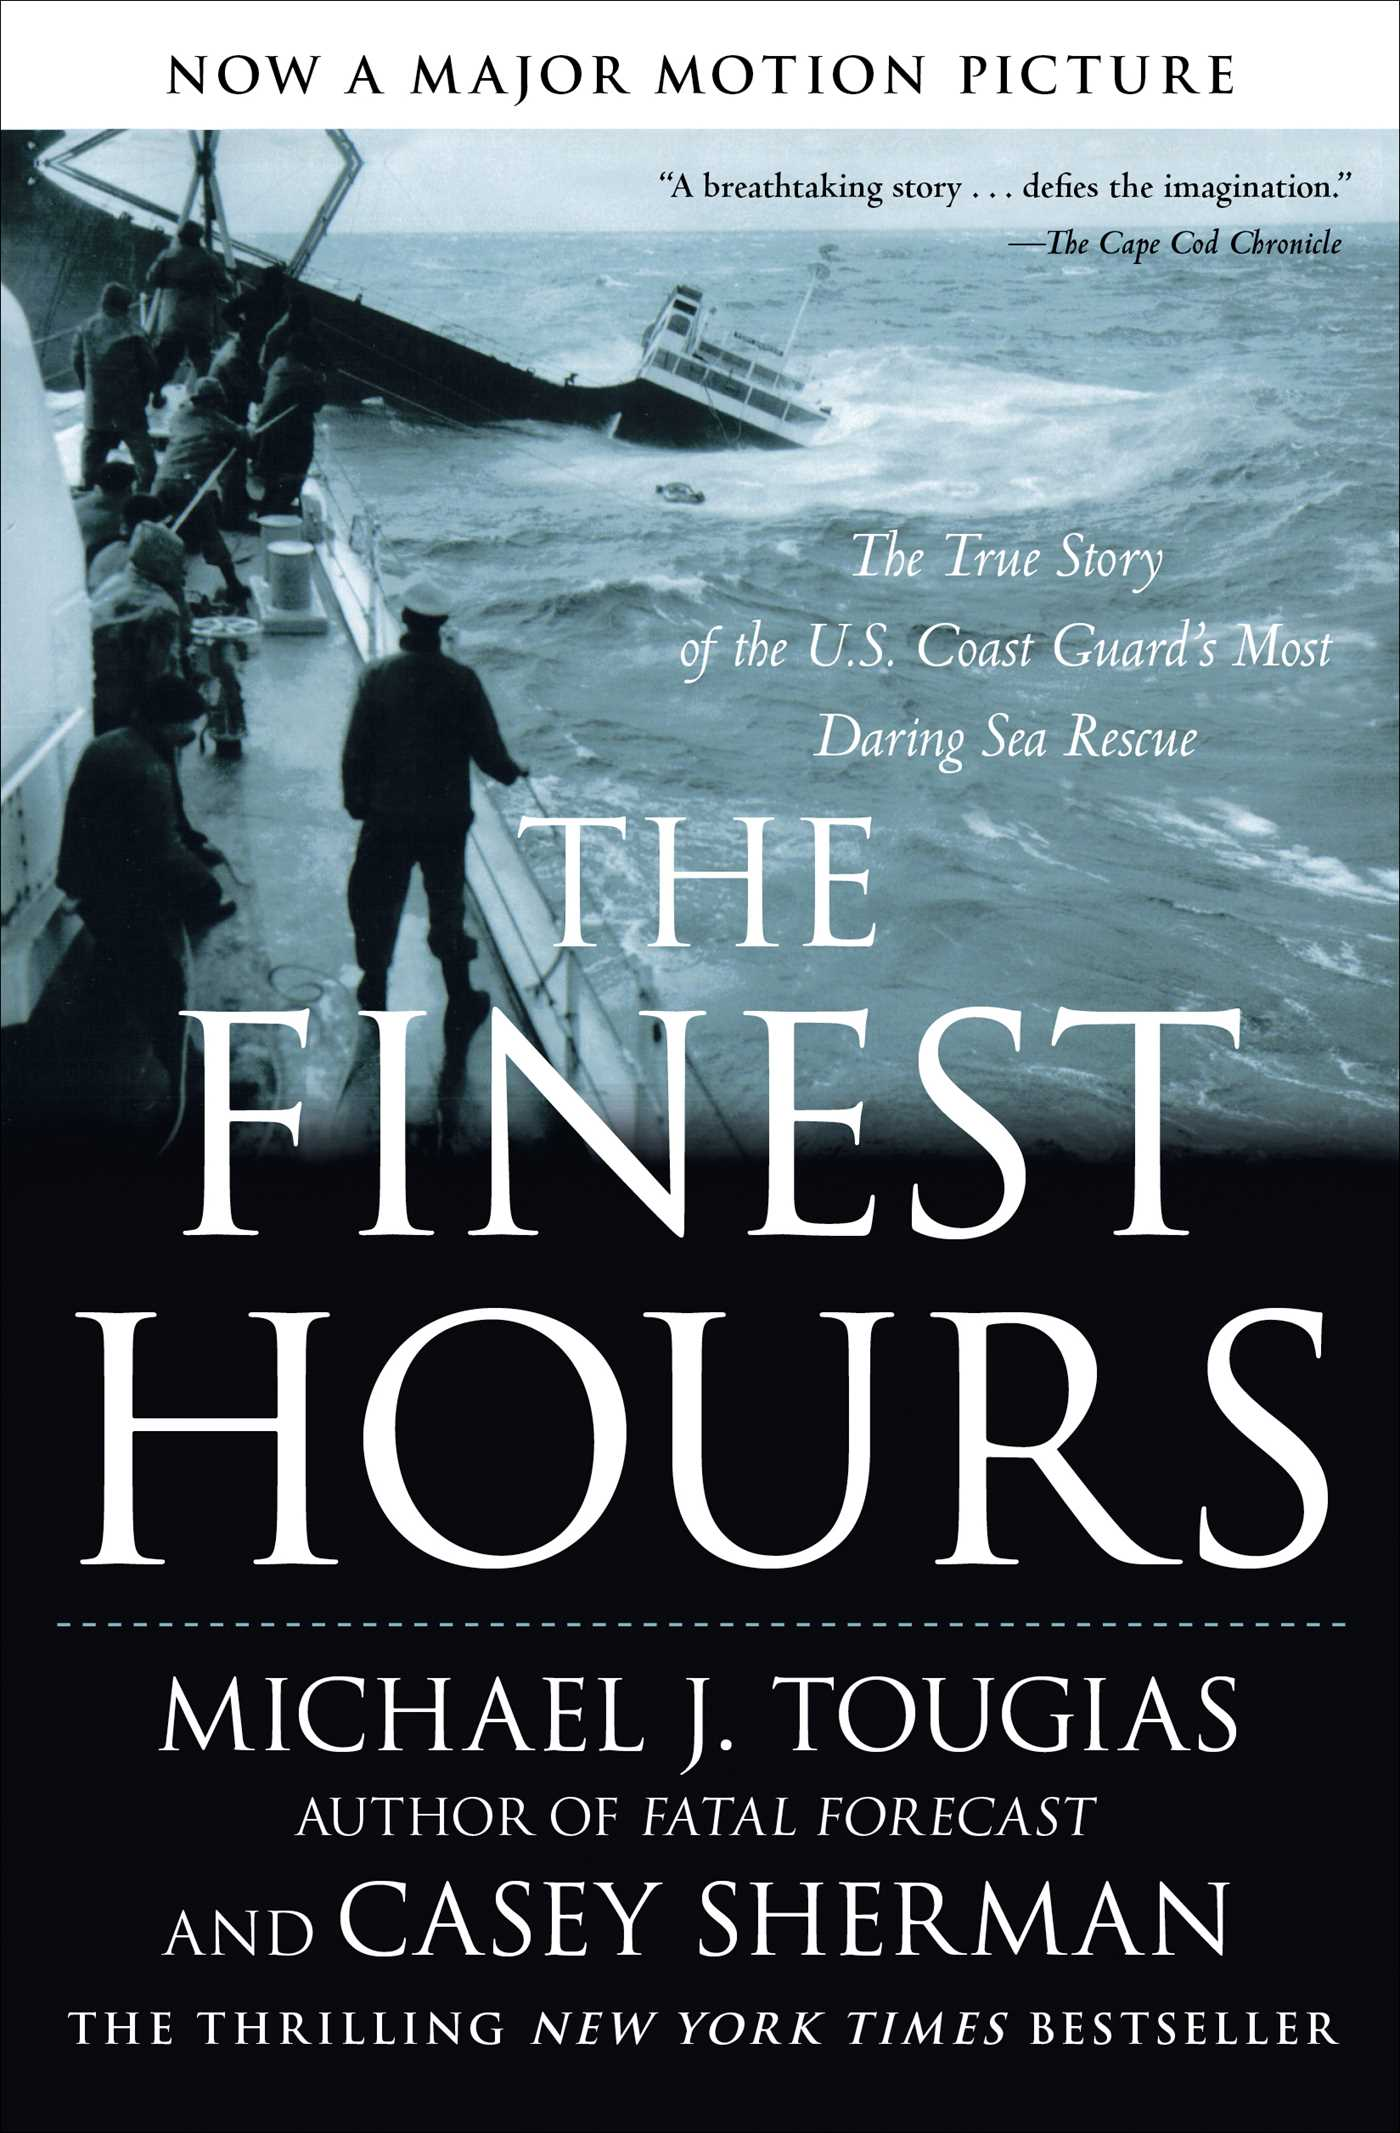 The-finest-hours-9781416567226_hr